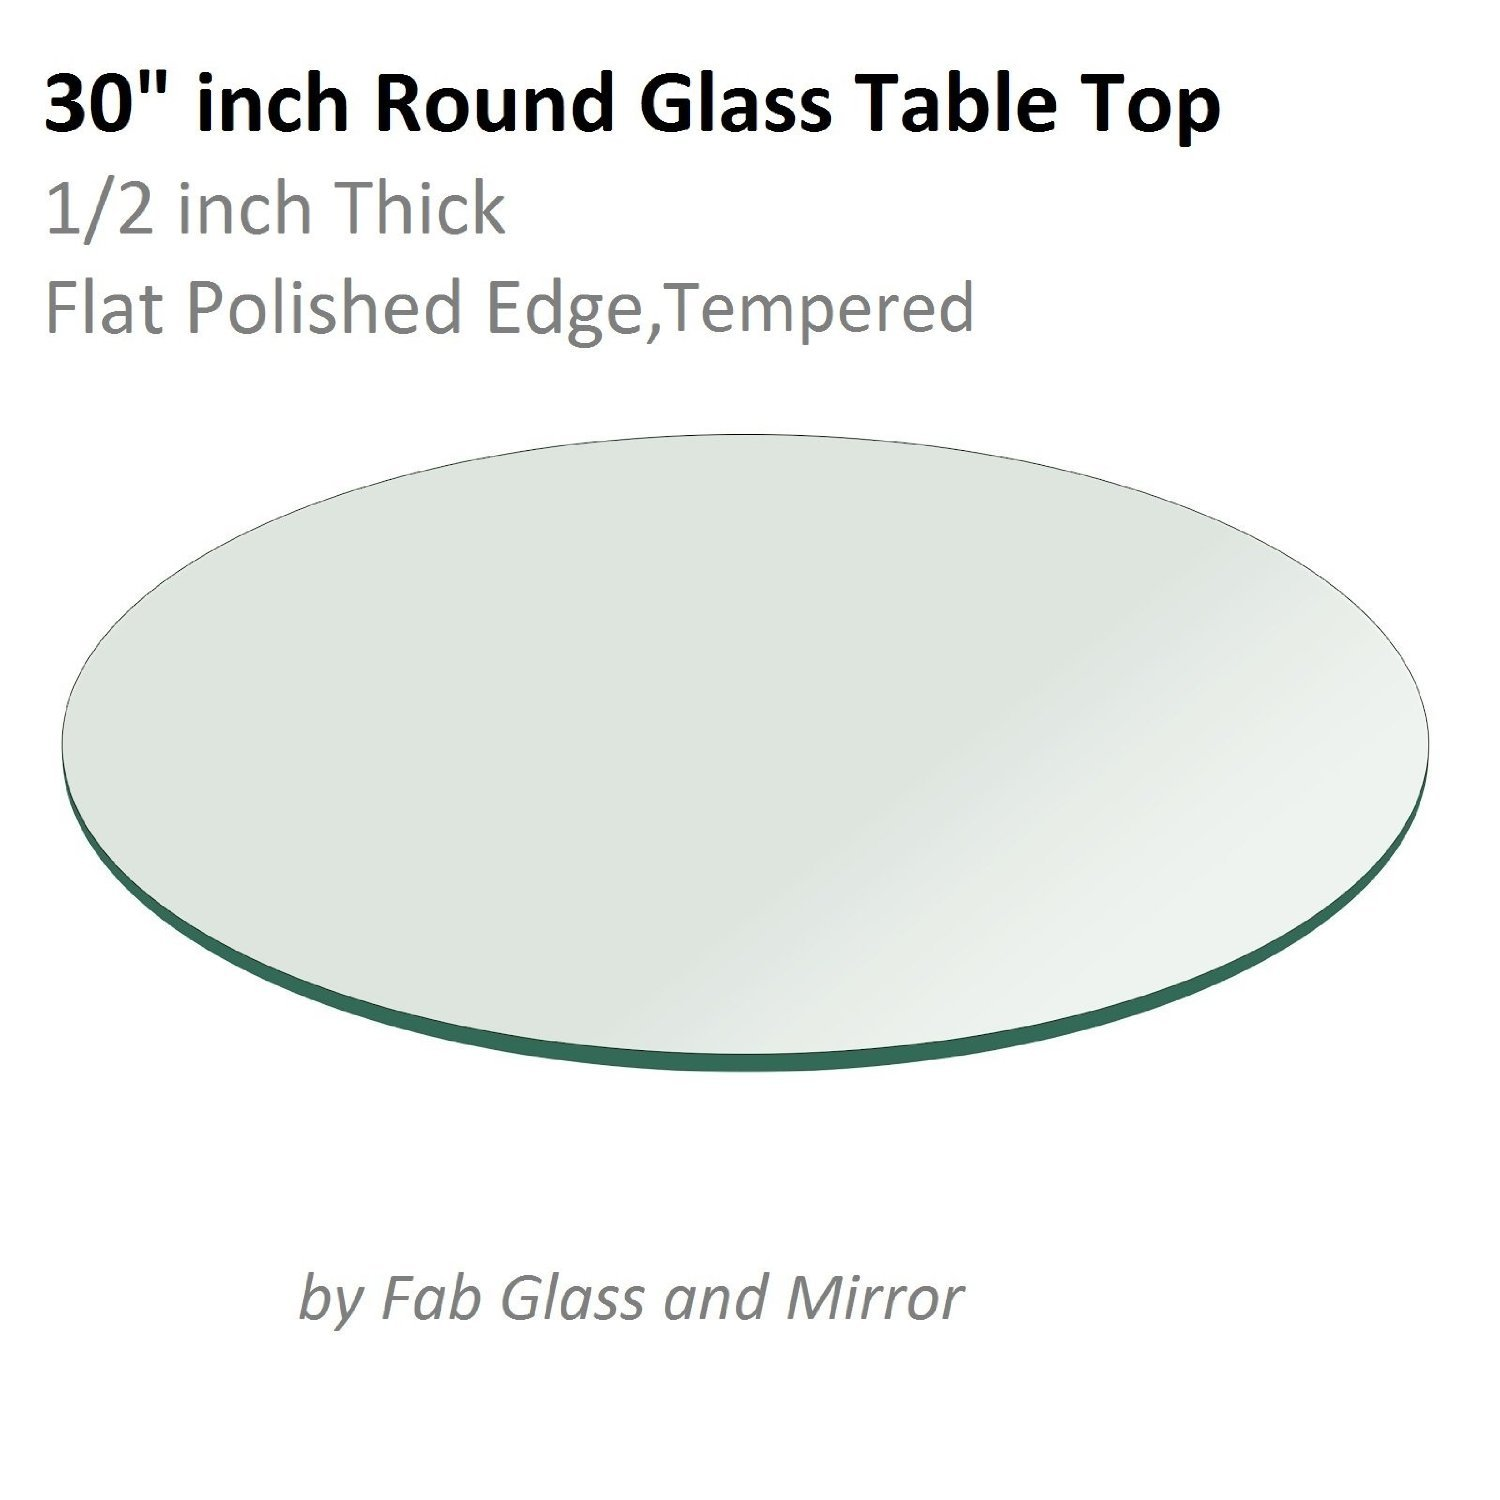 30'' Inch Round Glass Table Top 1/2'' Thick Flat Polish Edge Tempered by Fab Glass and Mirror by Fab Glass and Mirror (Image #2)